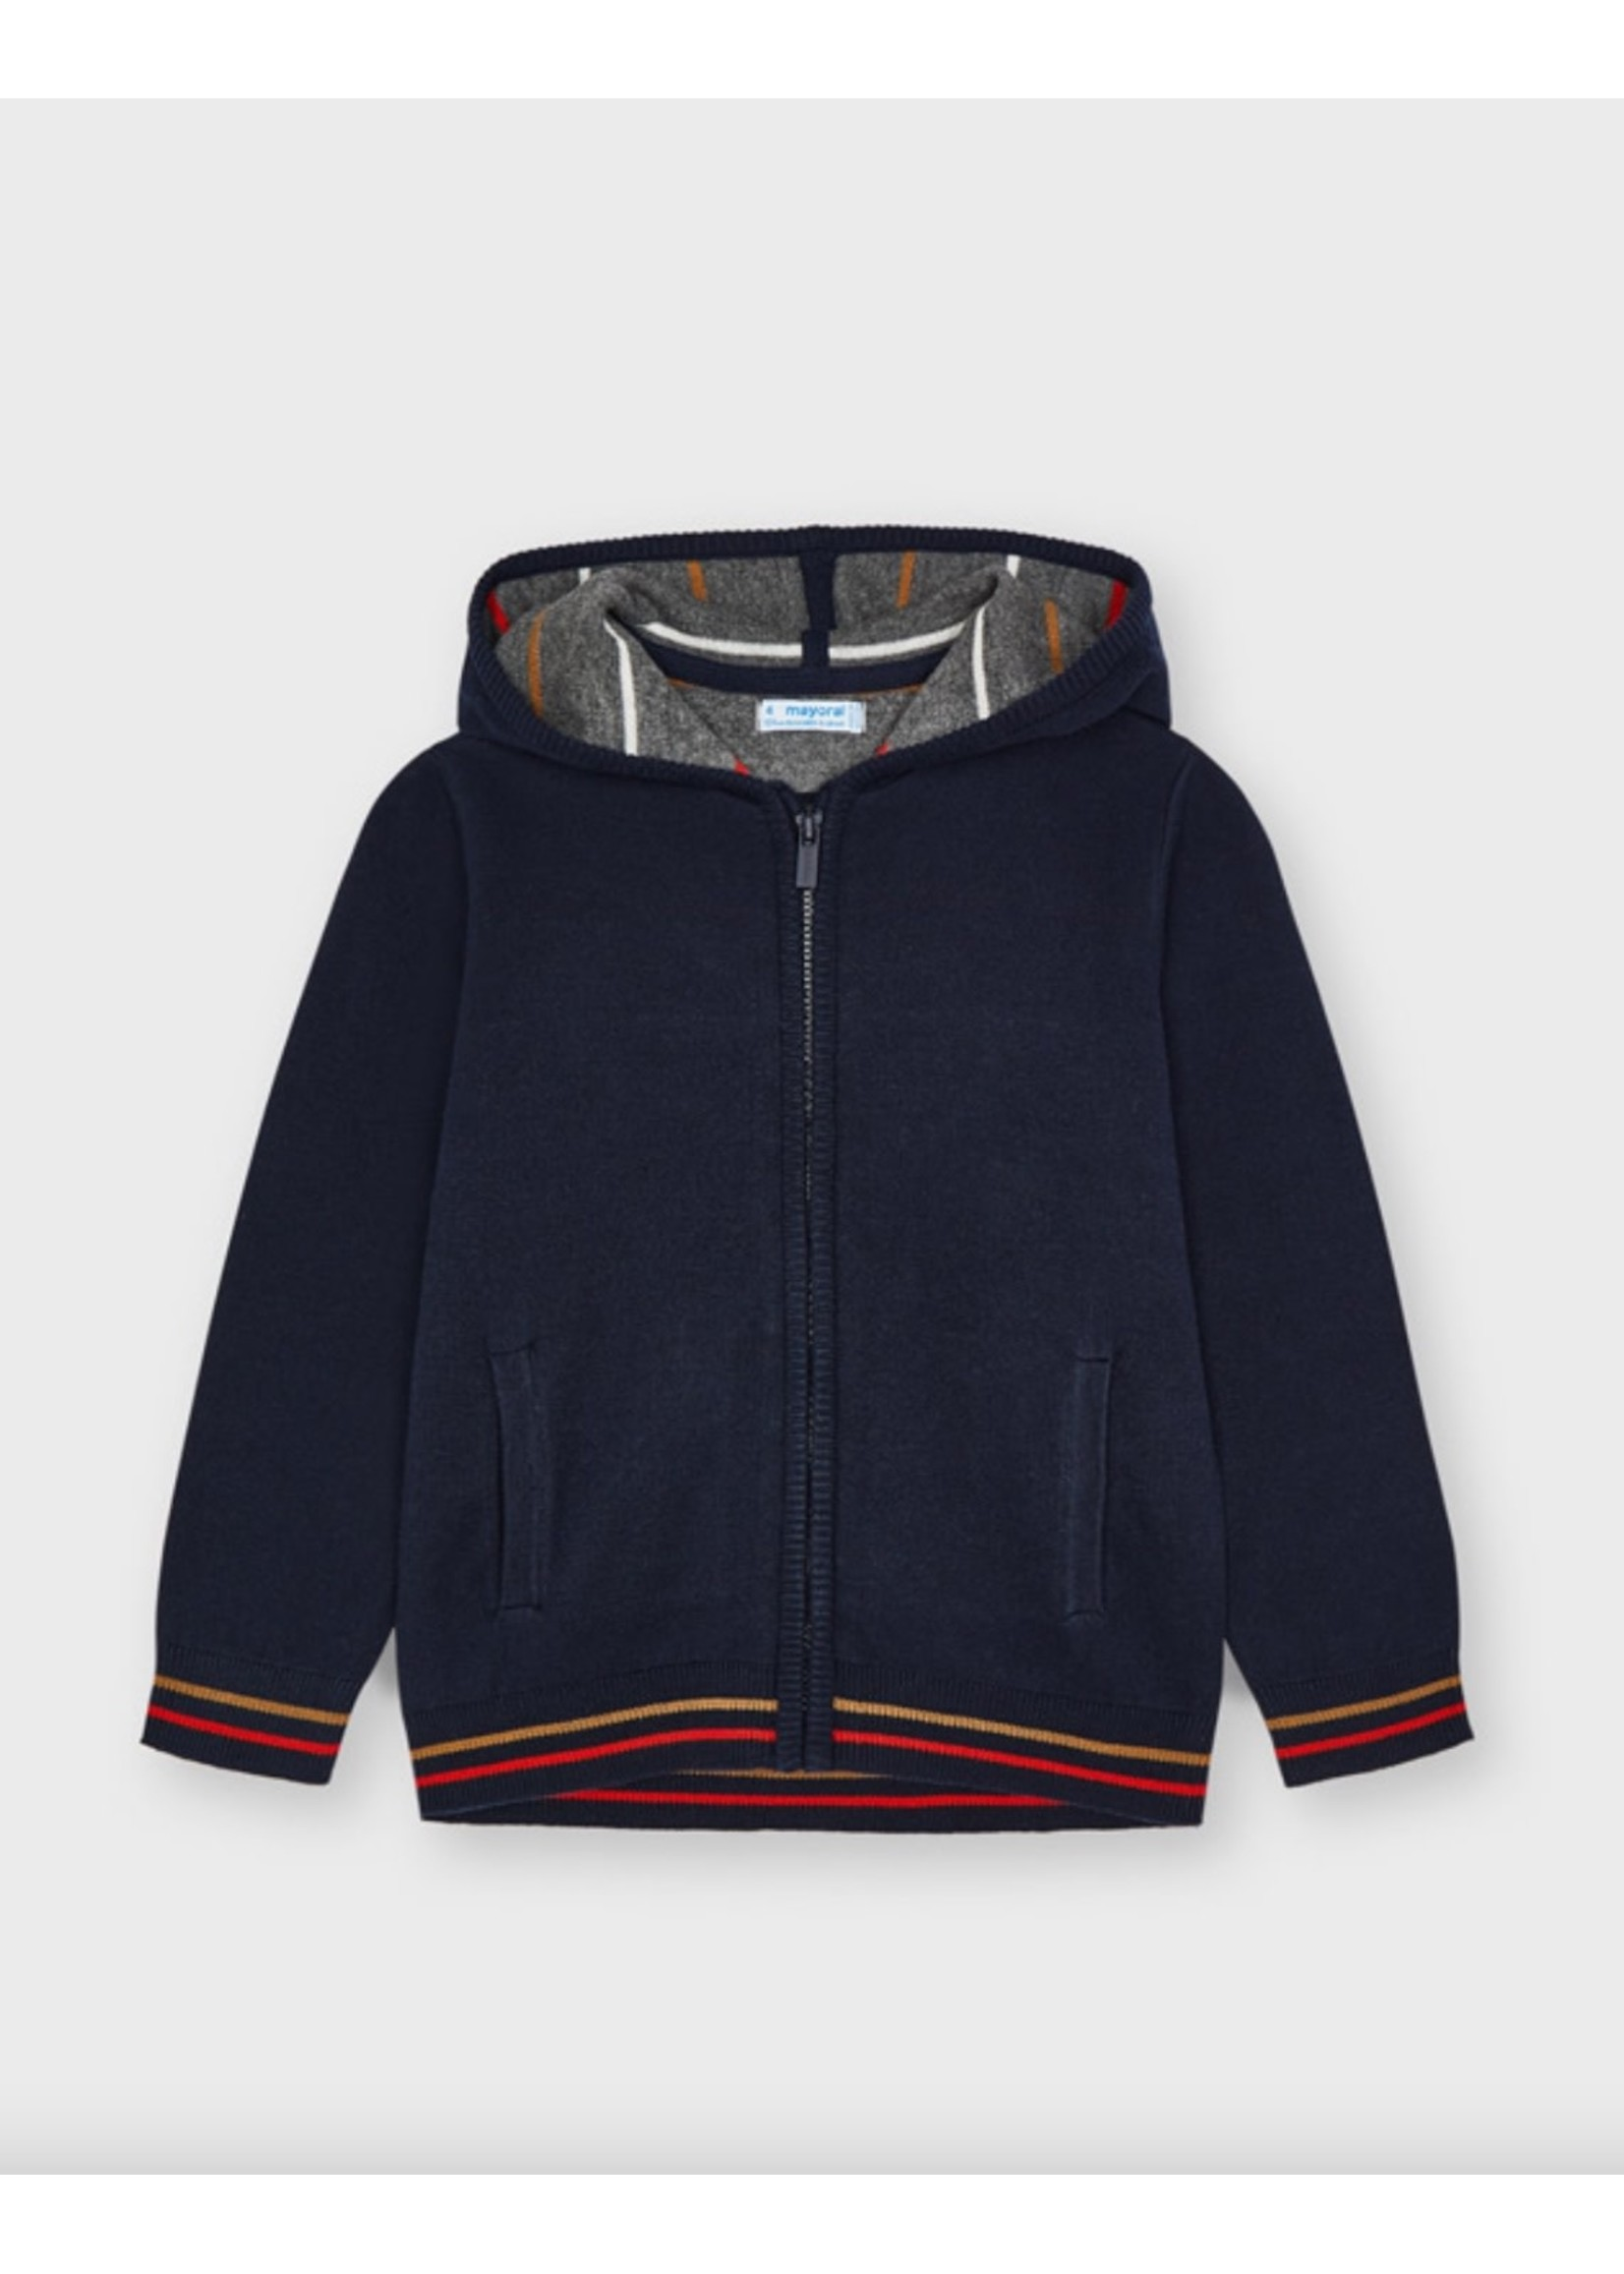 Mayoral Mayoral, ECOFRIENDS Woven Knit Jacket In Navy Blue